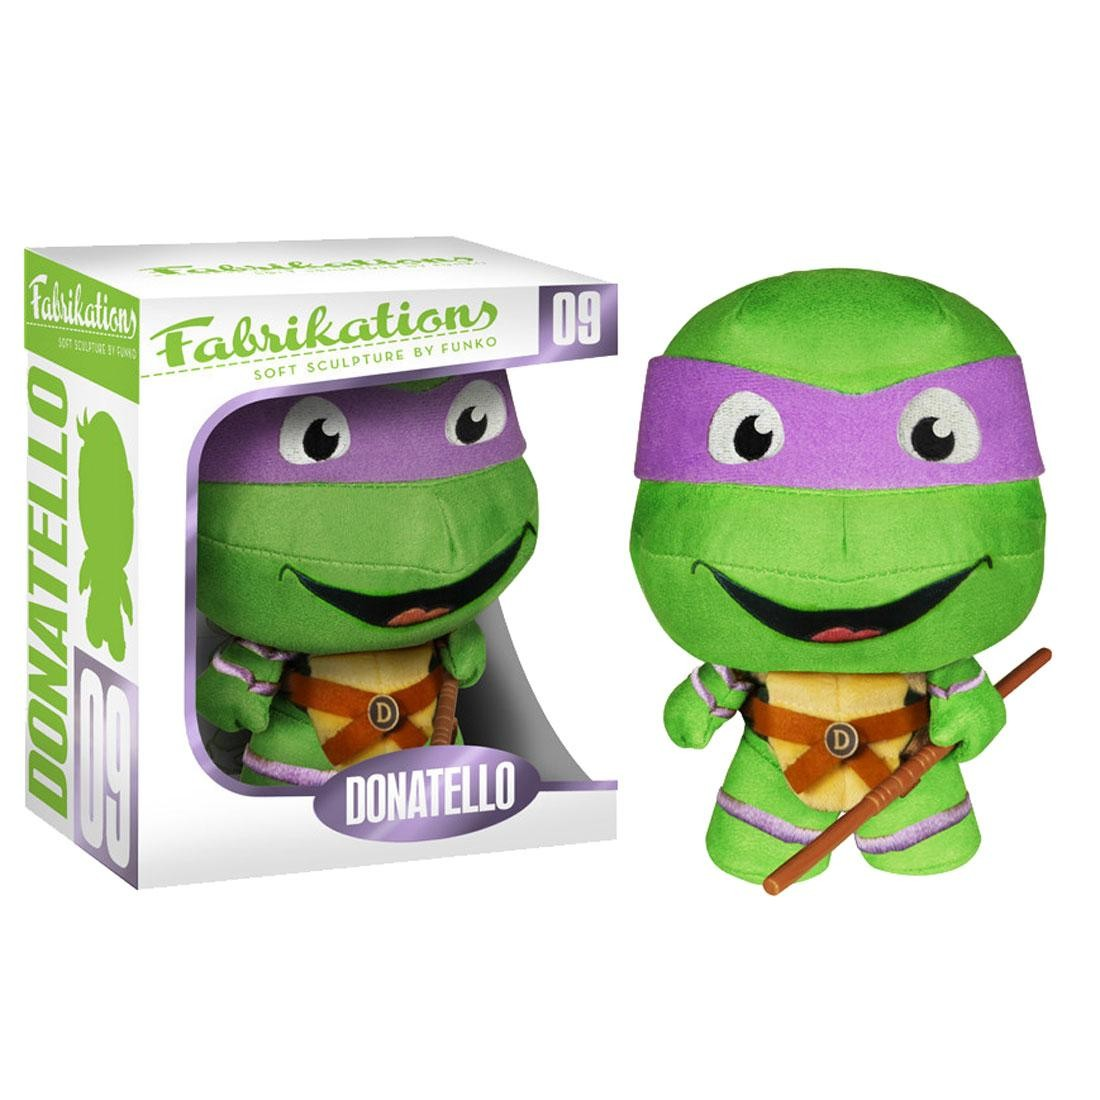 Funko Fabrikations TMNT Donatello (green / purple)